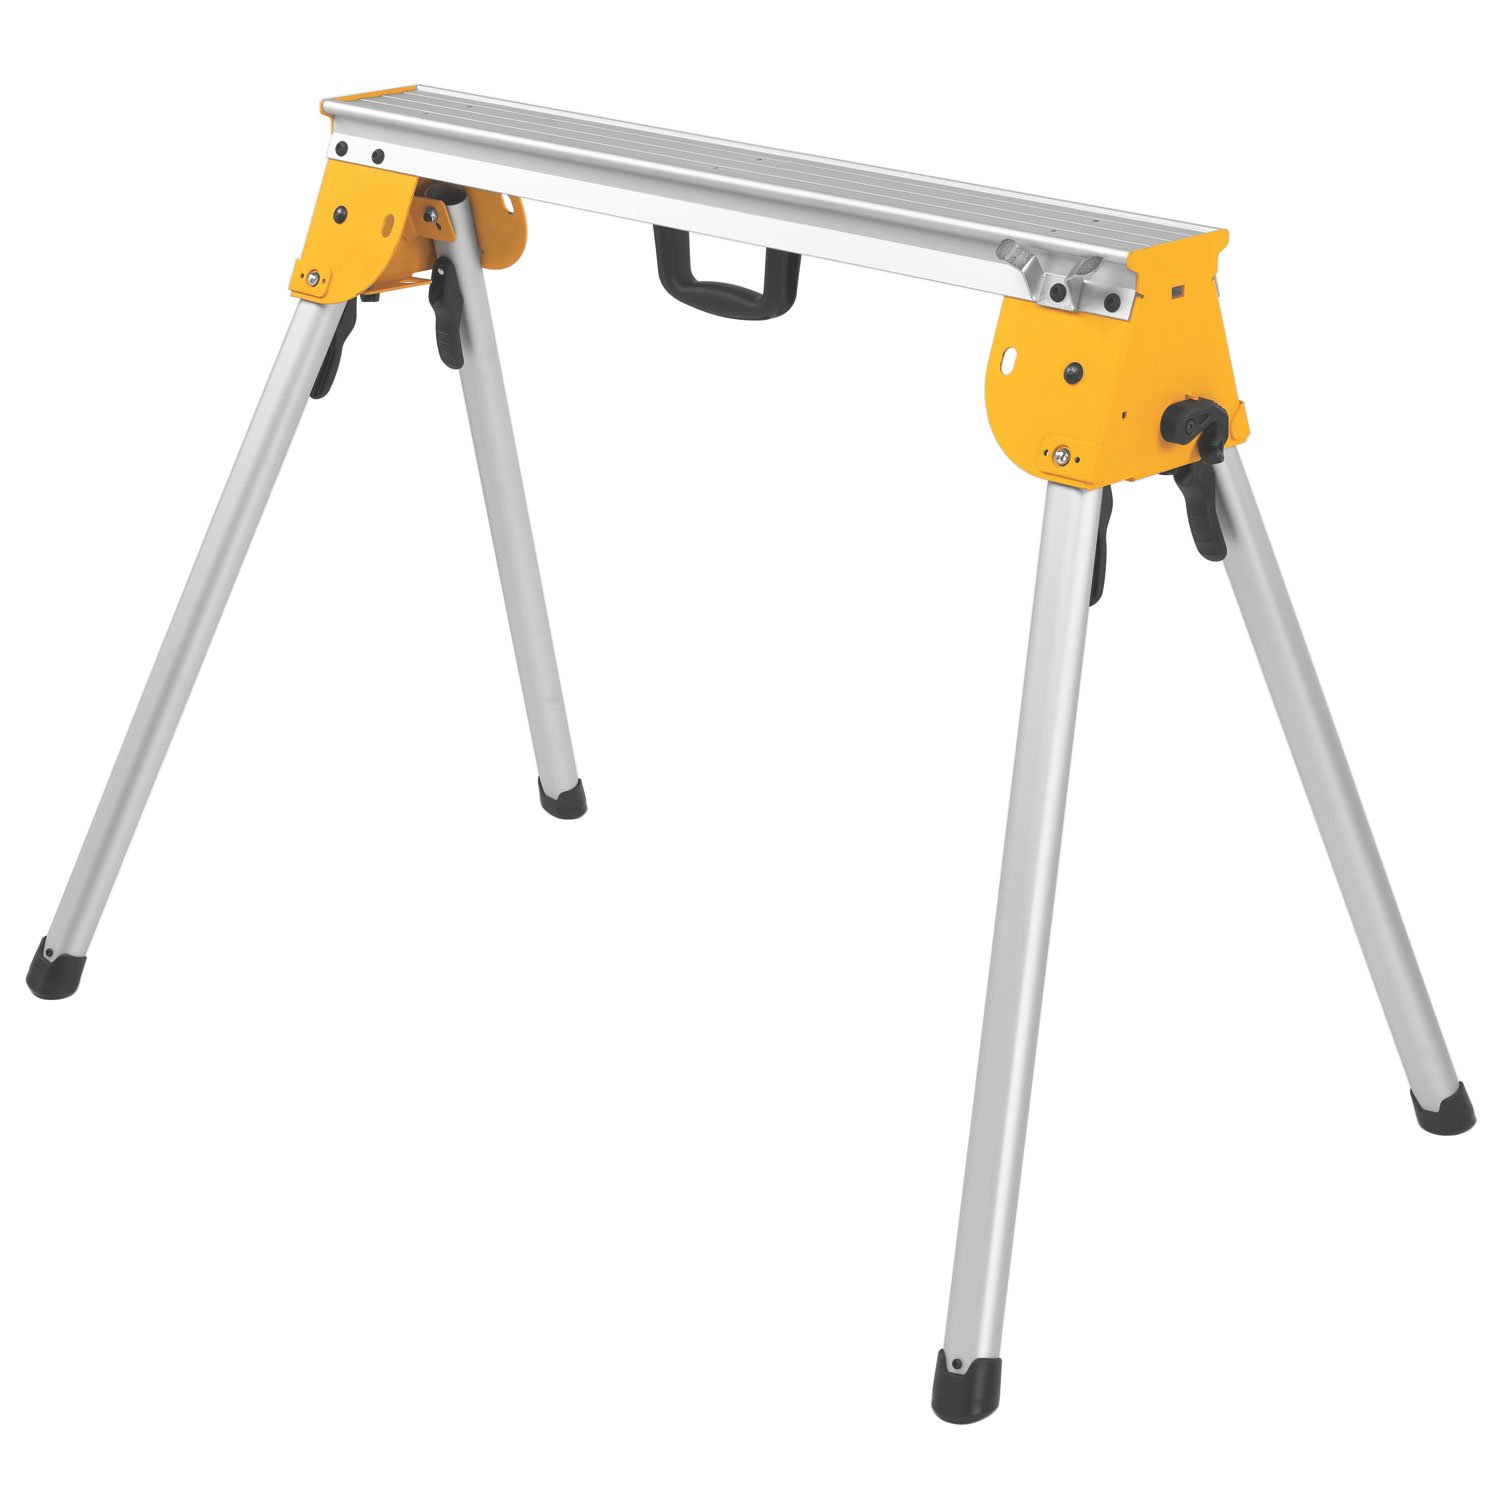 DEWALT DWX725 Heavy Duty Work Stand